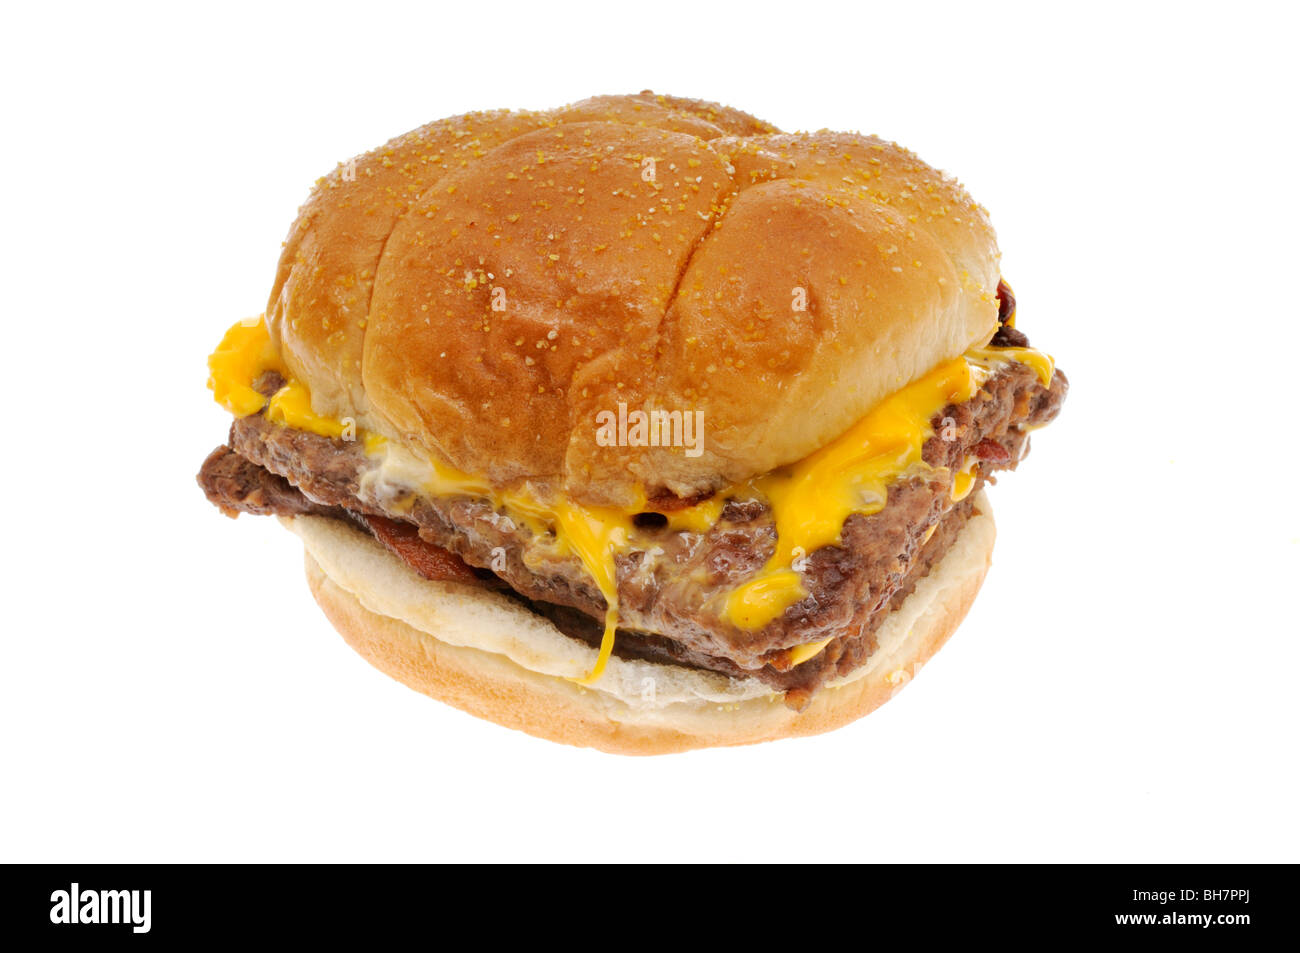 Wendy's bacon double cheeseburger in bun on white background cutout - Stock Image